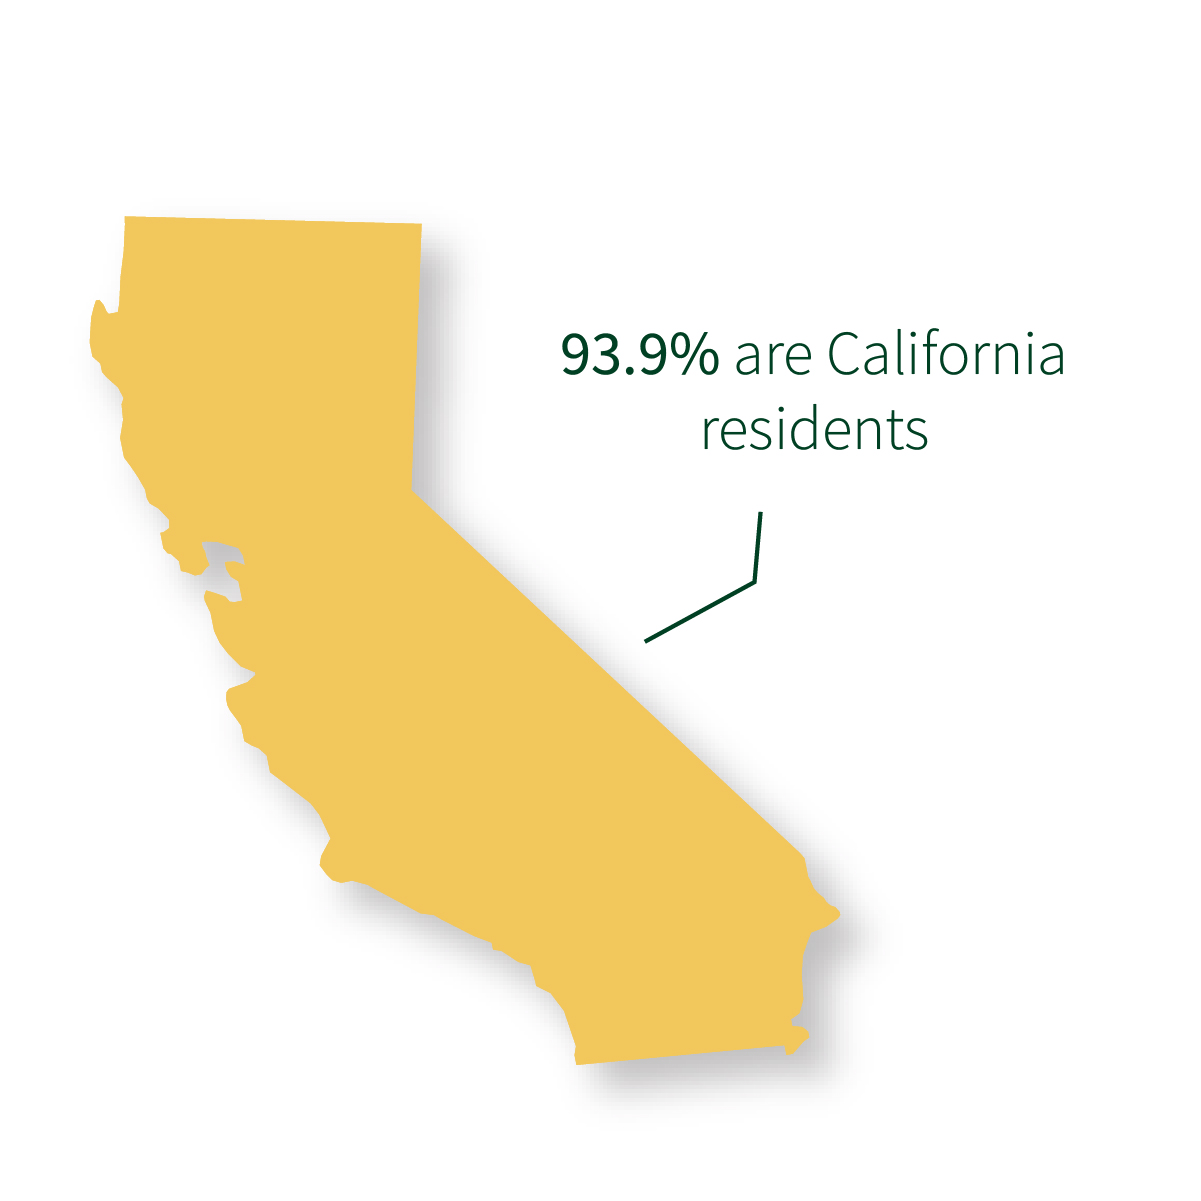 93.9% are California residents